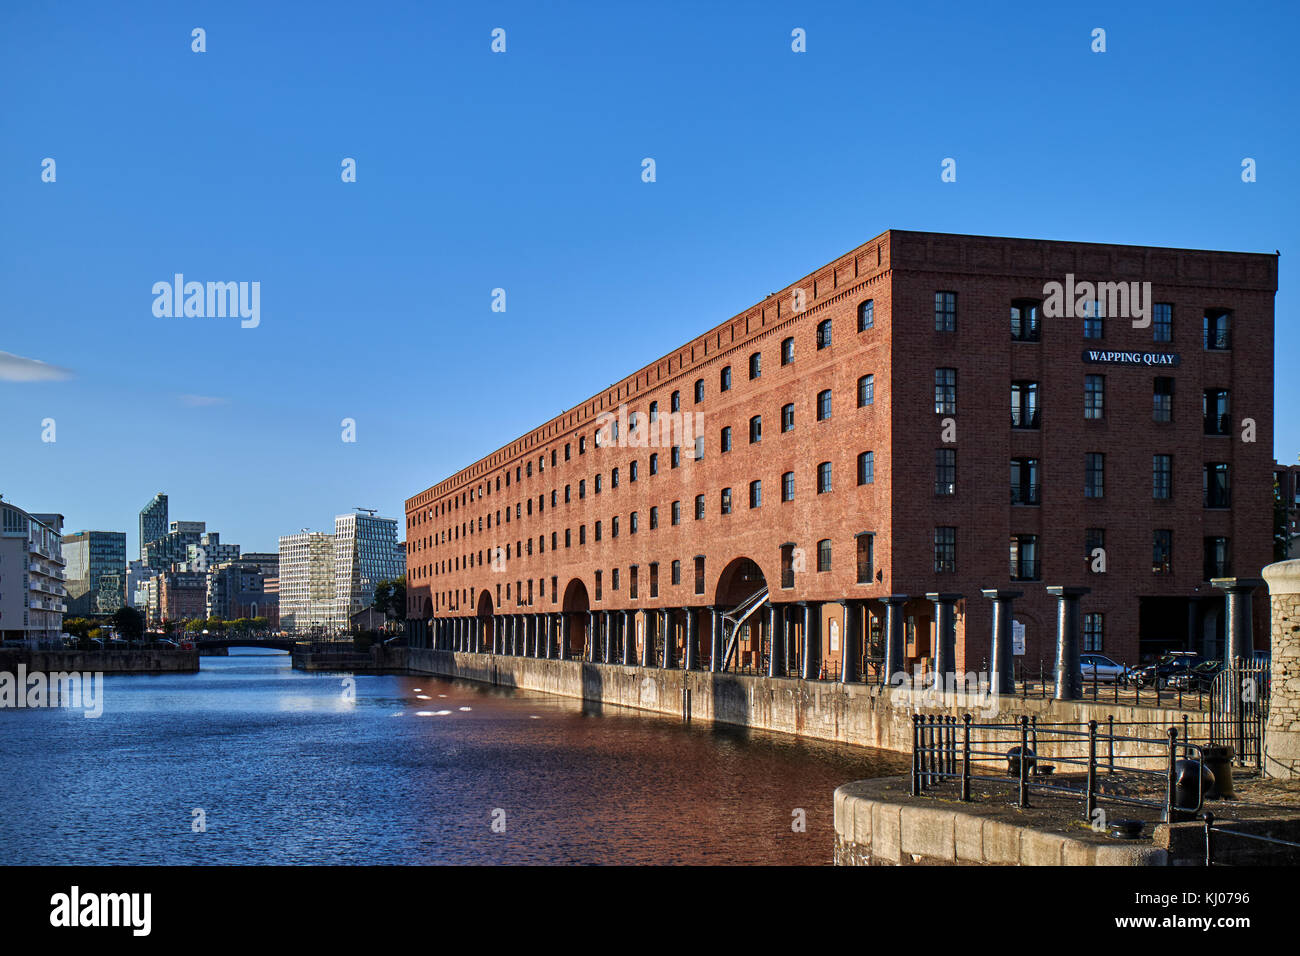 England, Merseyside, Liverpool city  A view of the famous Dock that